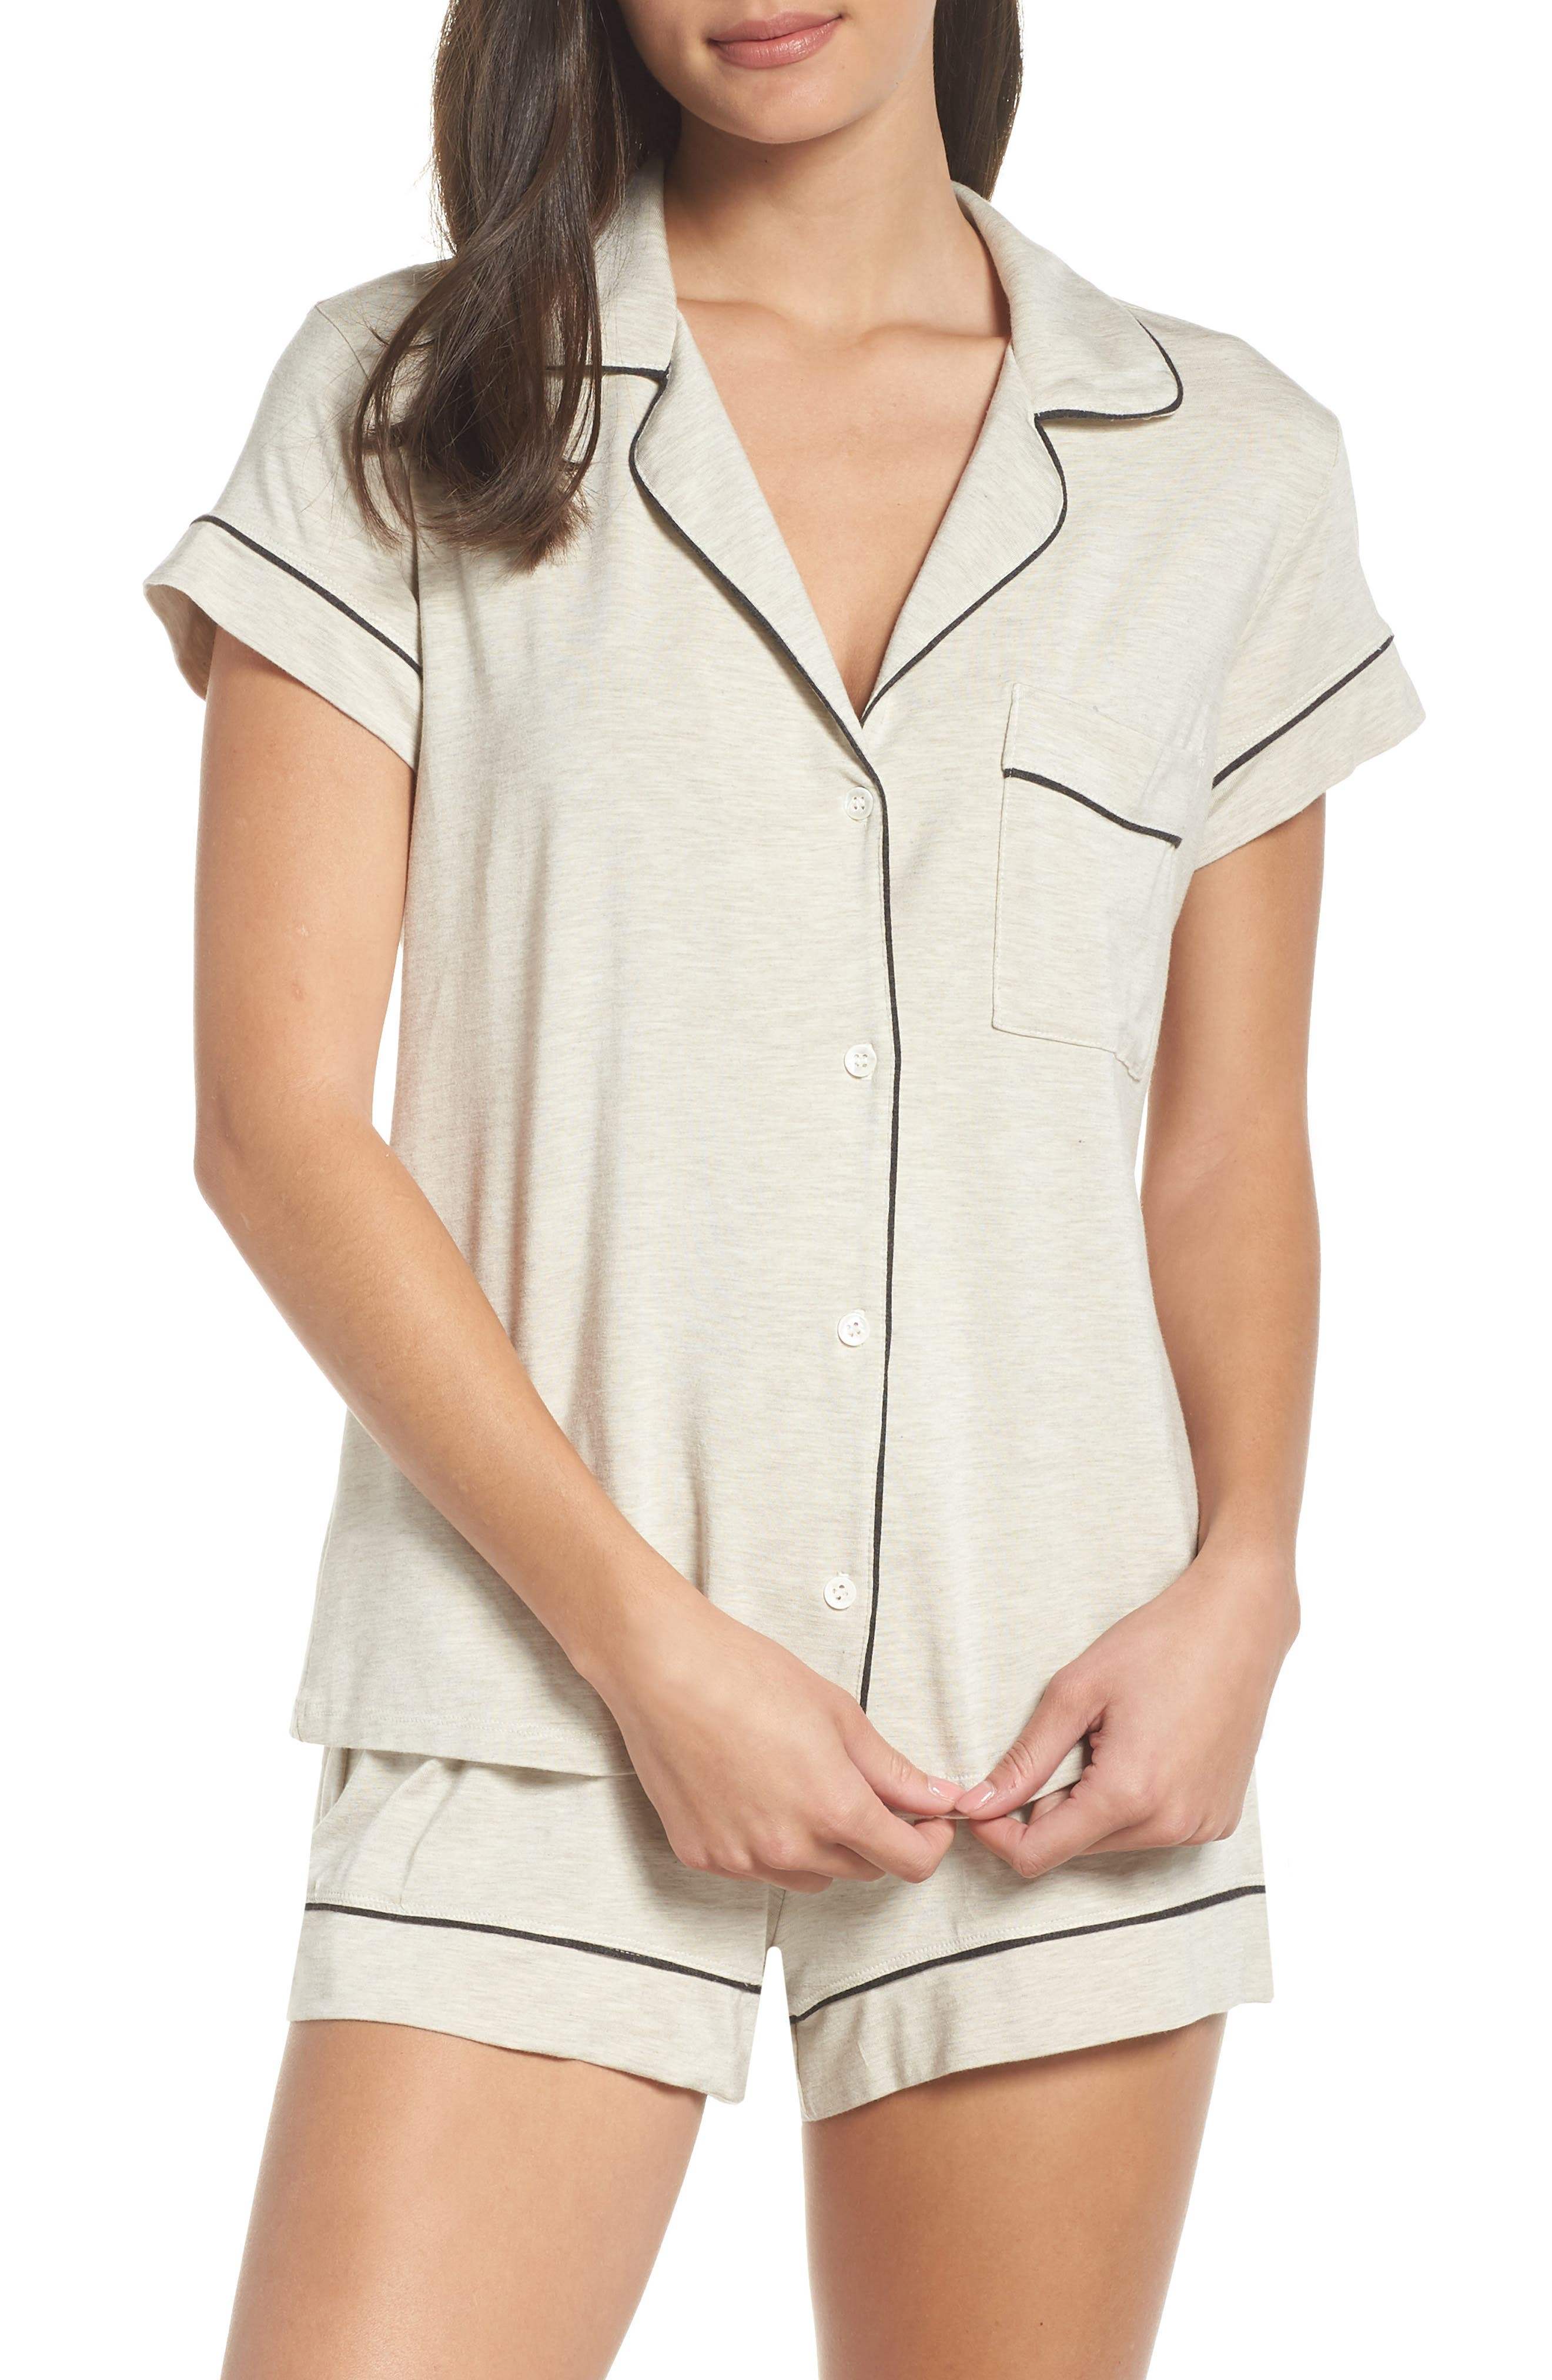 'Gisele' Shorty Pajamas,                             Main thumbnail 1, color,                             OATMEAL HEATHER/ CHARCOAL